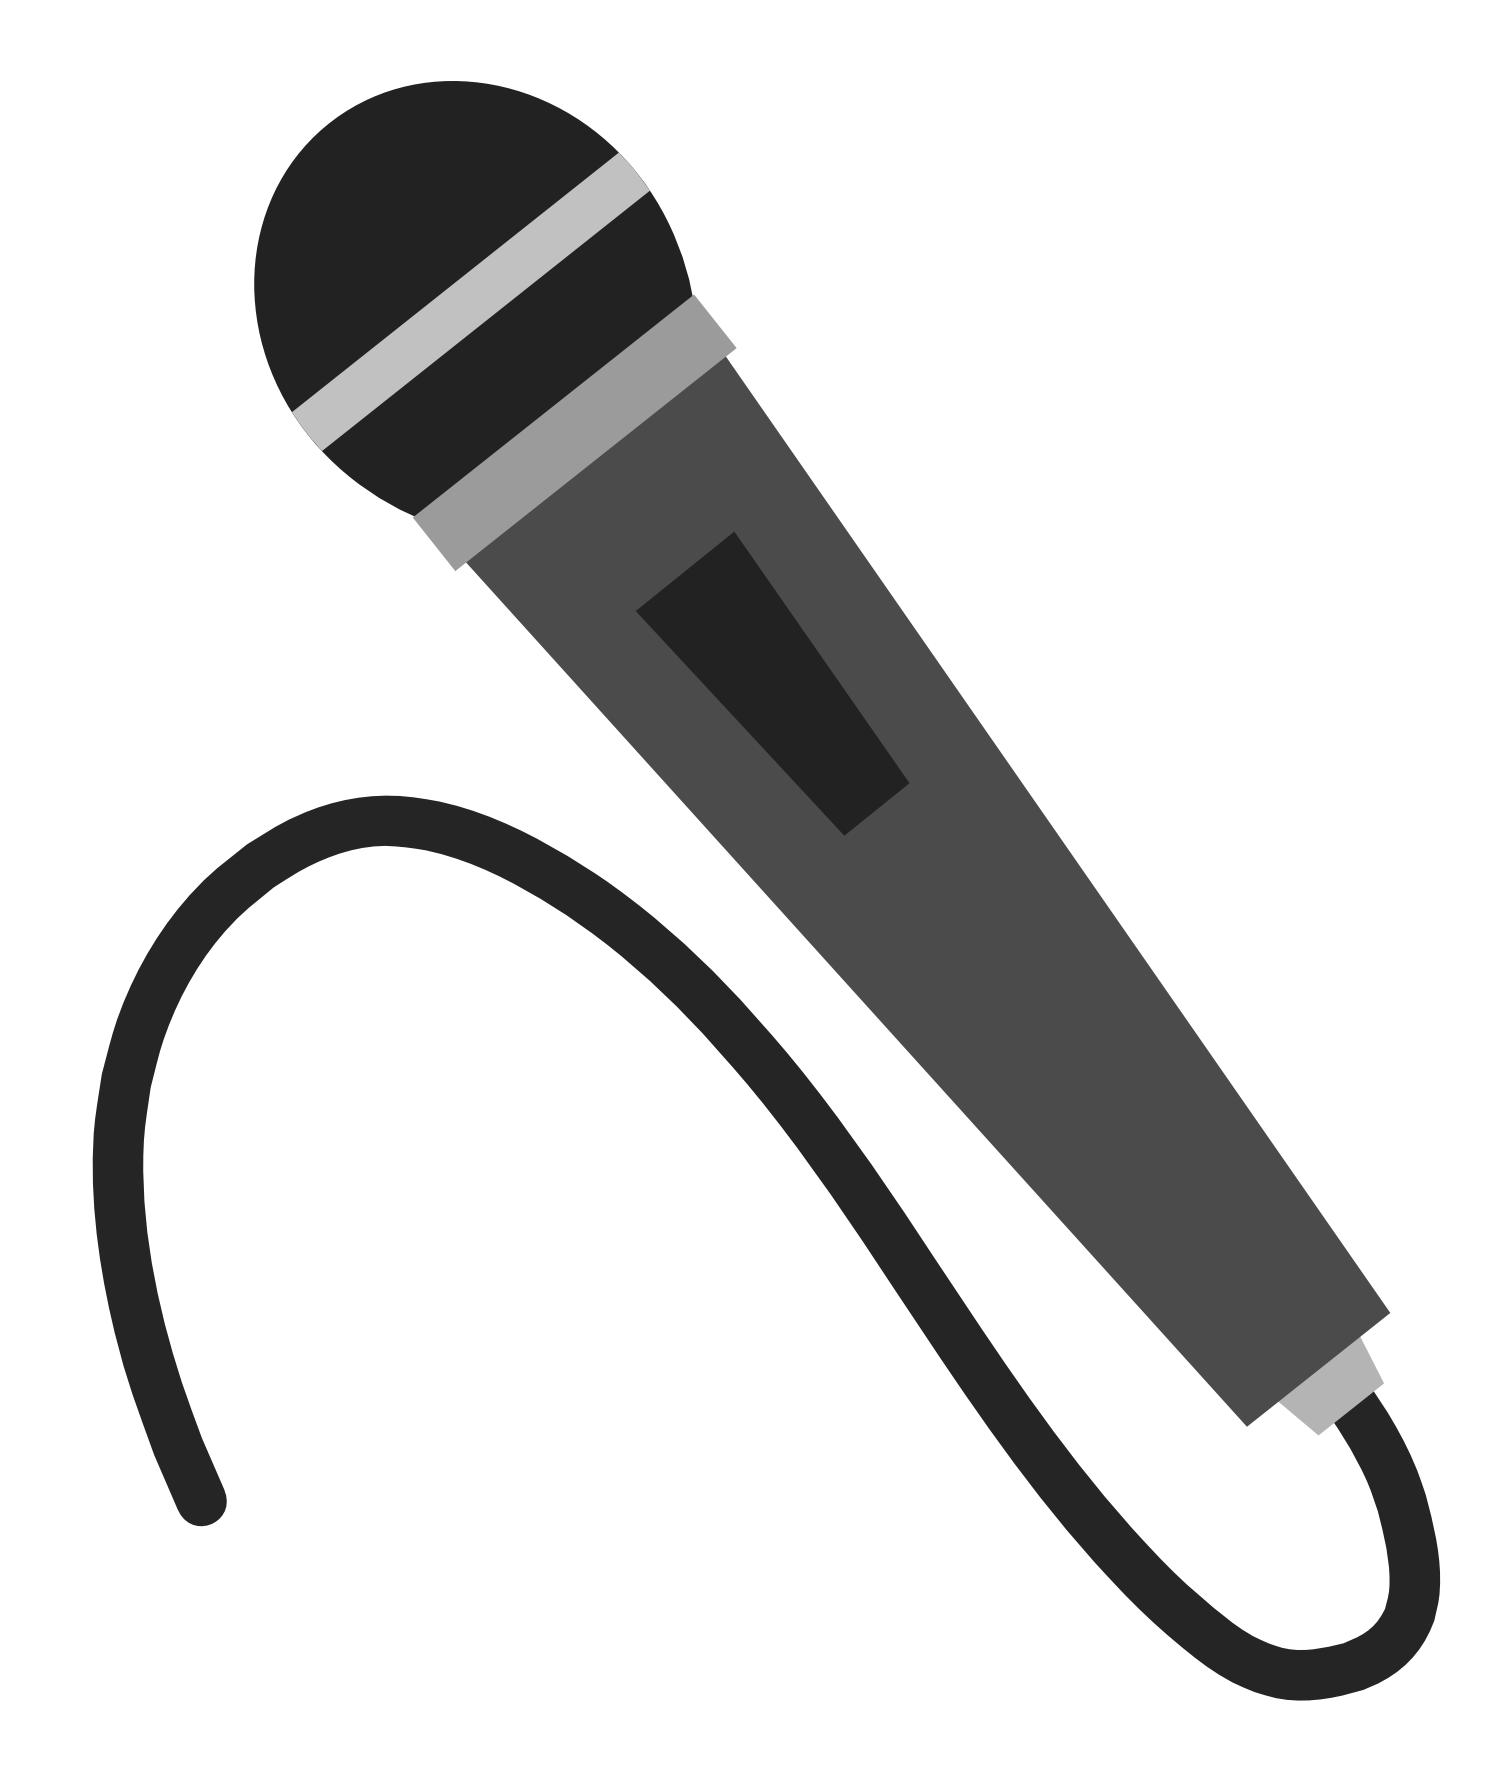 Microphone clipart talk show. Image clipartpost